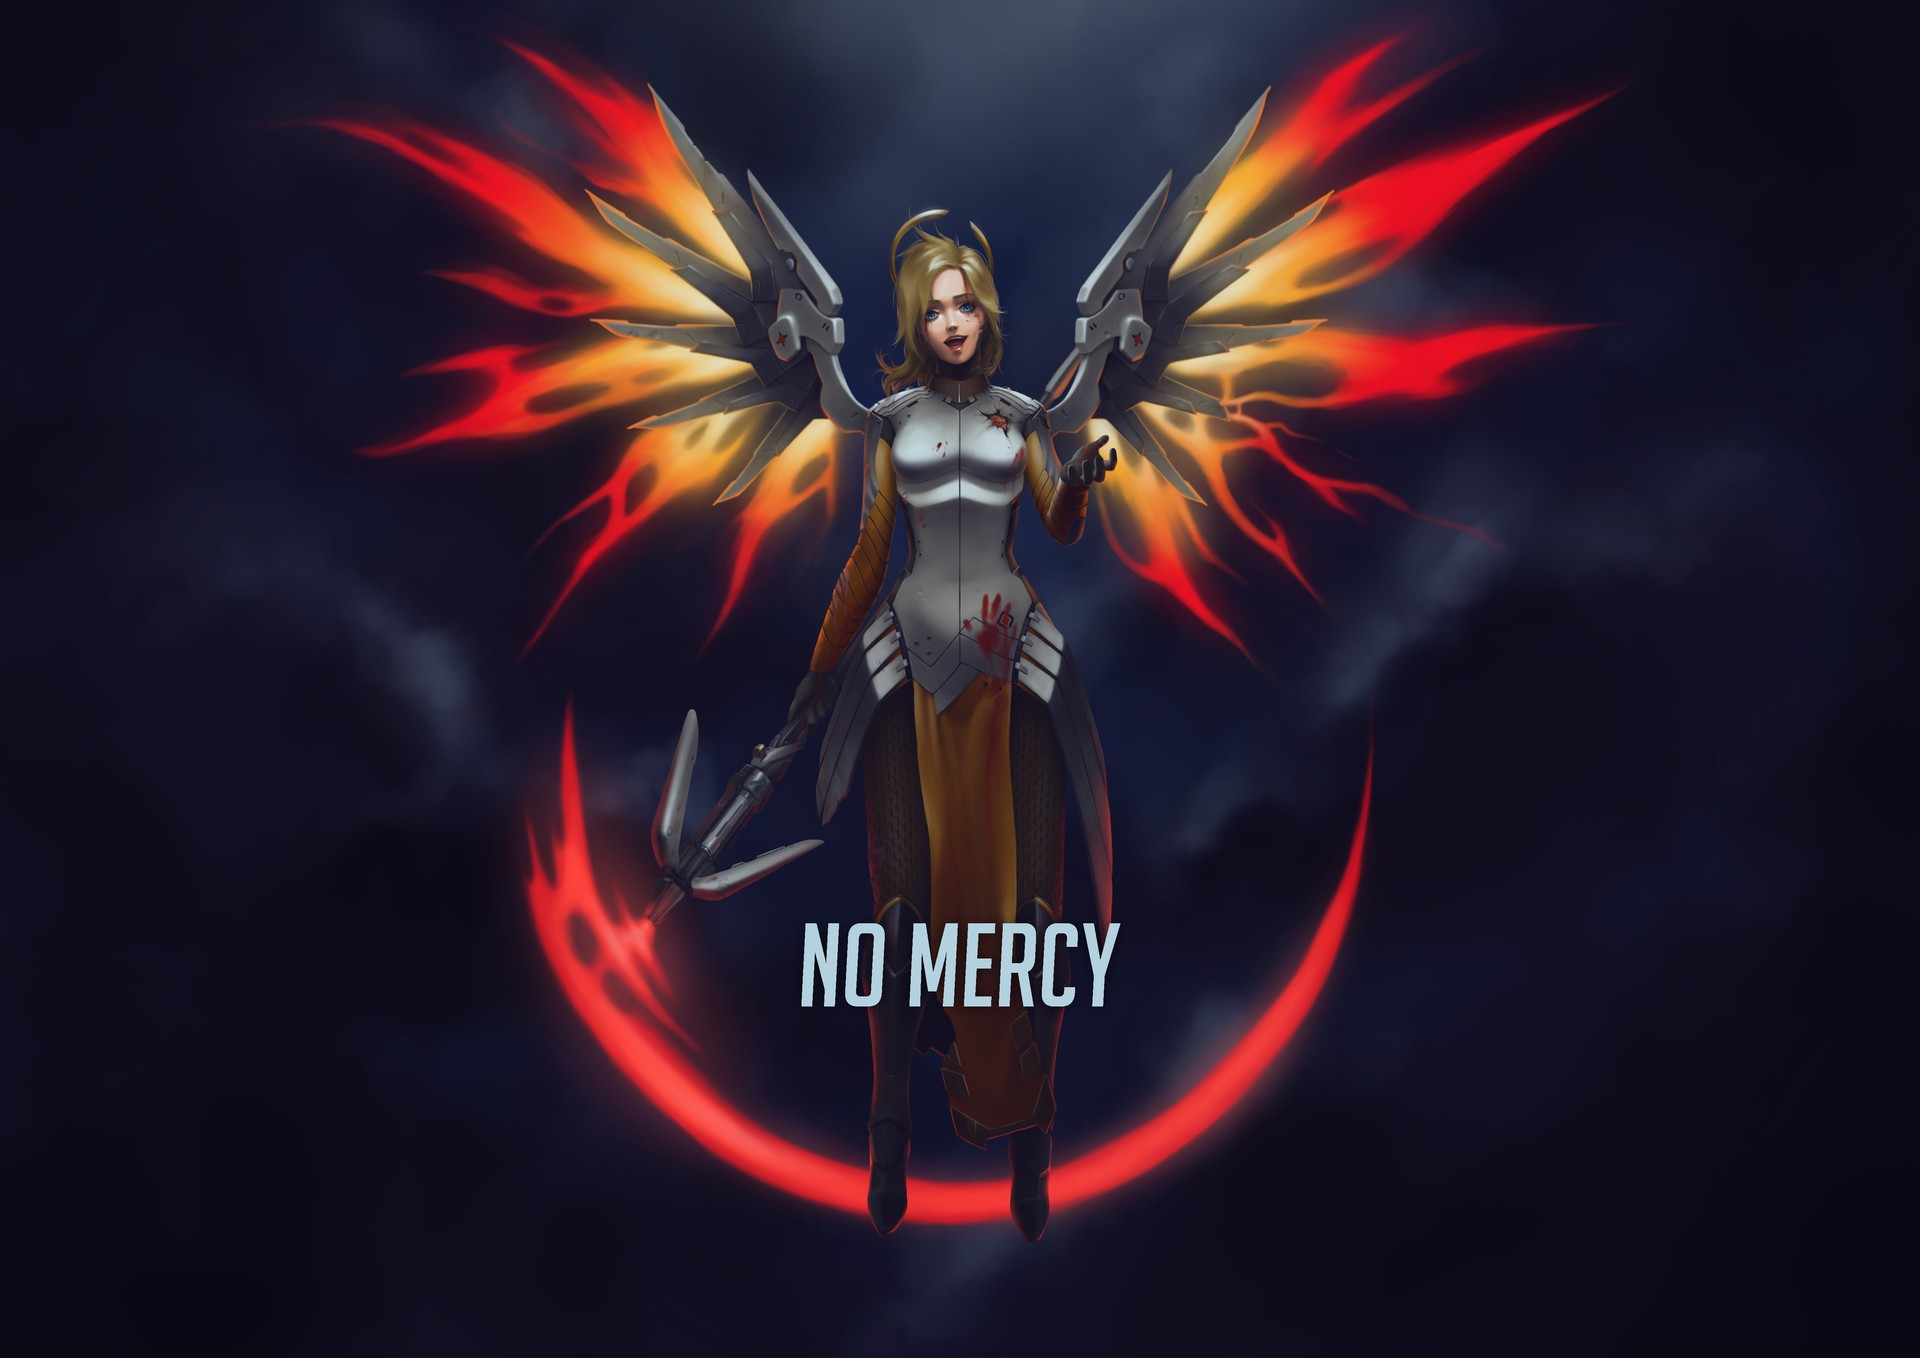 Animated Desktop Wallpaper For Windows 7 Free Download Mercy Wallpaper 183 ① Download Free Beautiful Wallpapers For